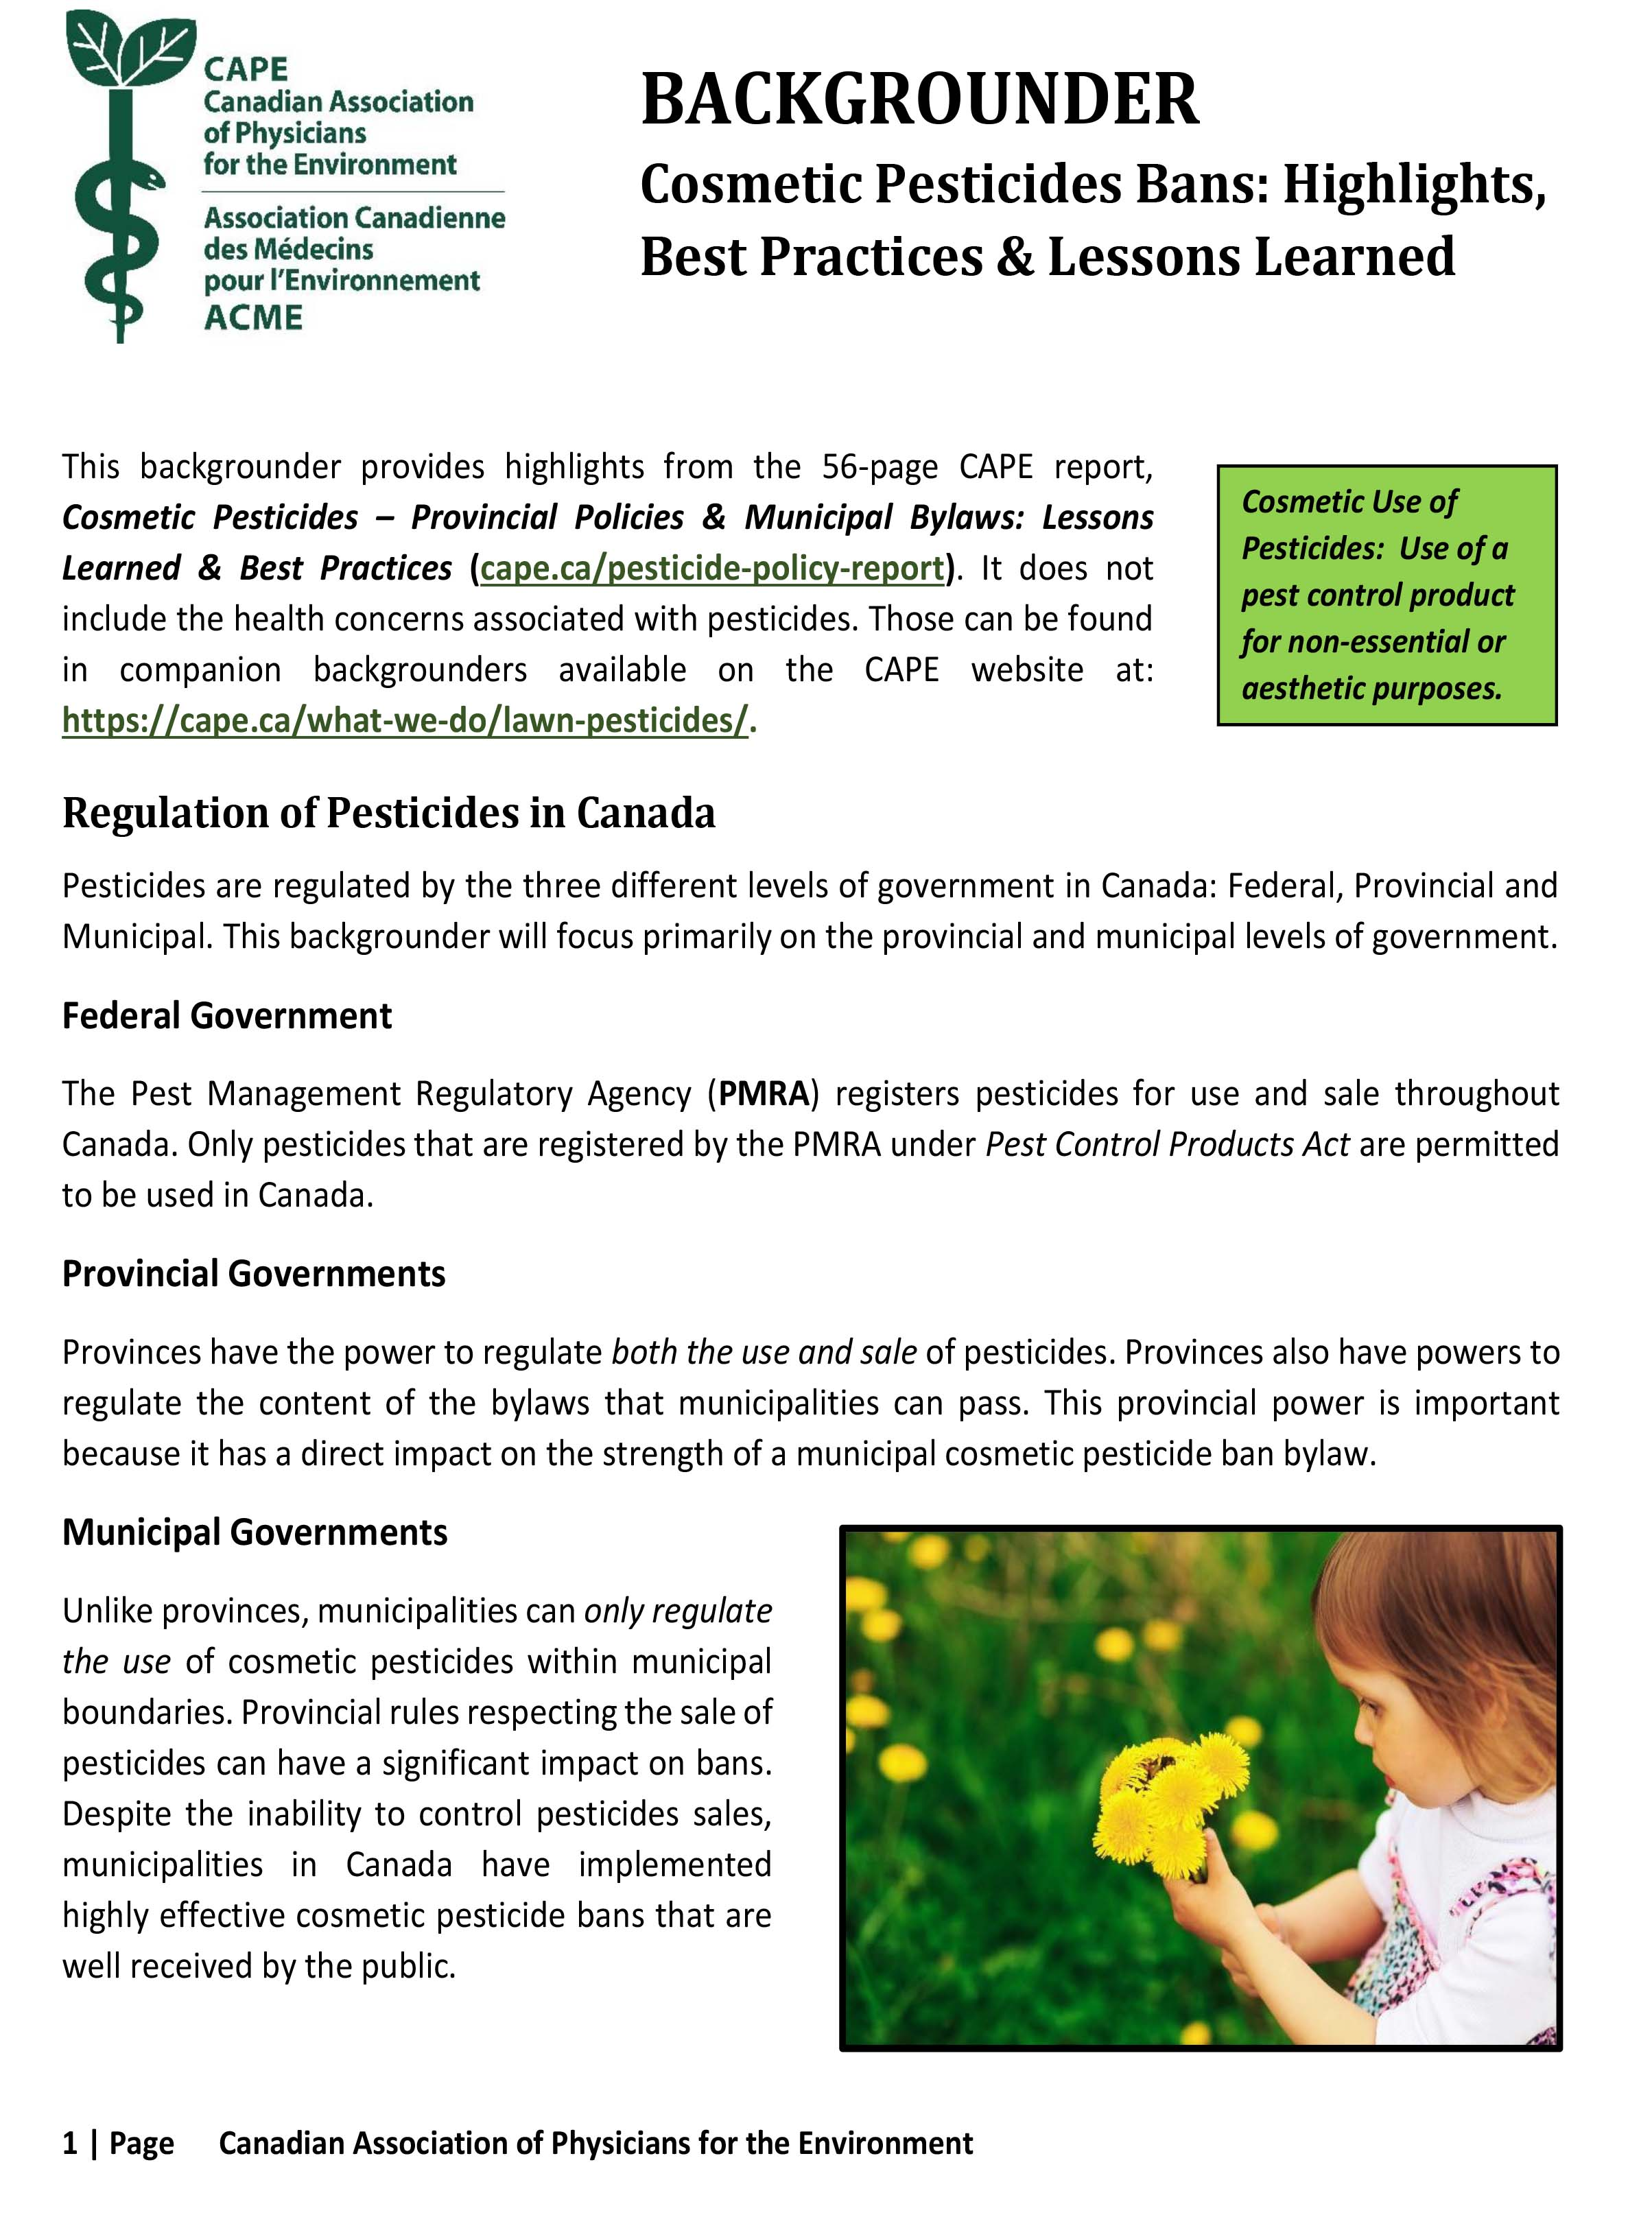 Cosmetic Pesticide Bans - Highlights, Best Practices & Lessons Learned